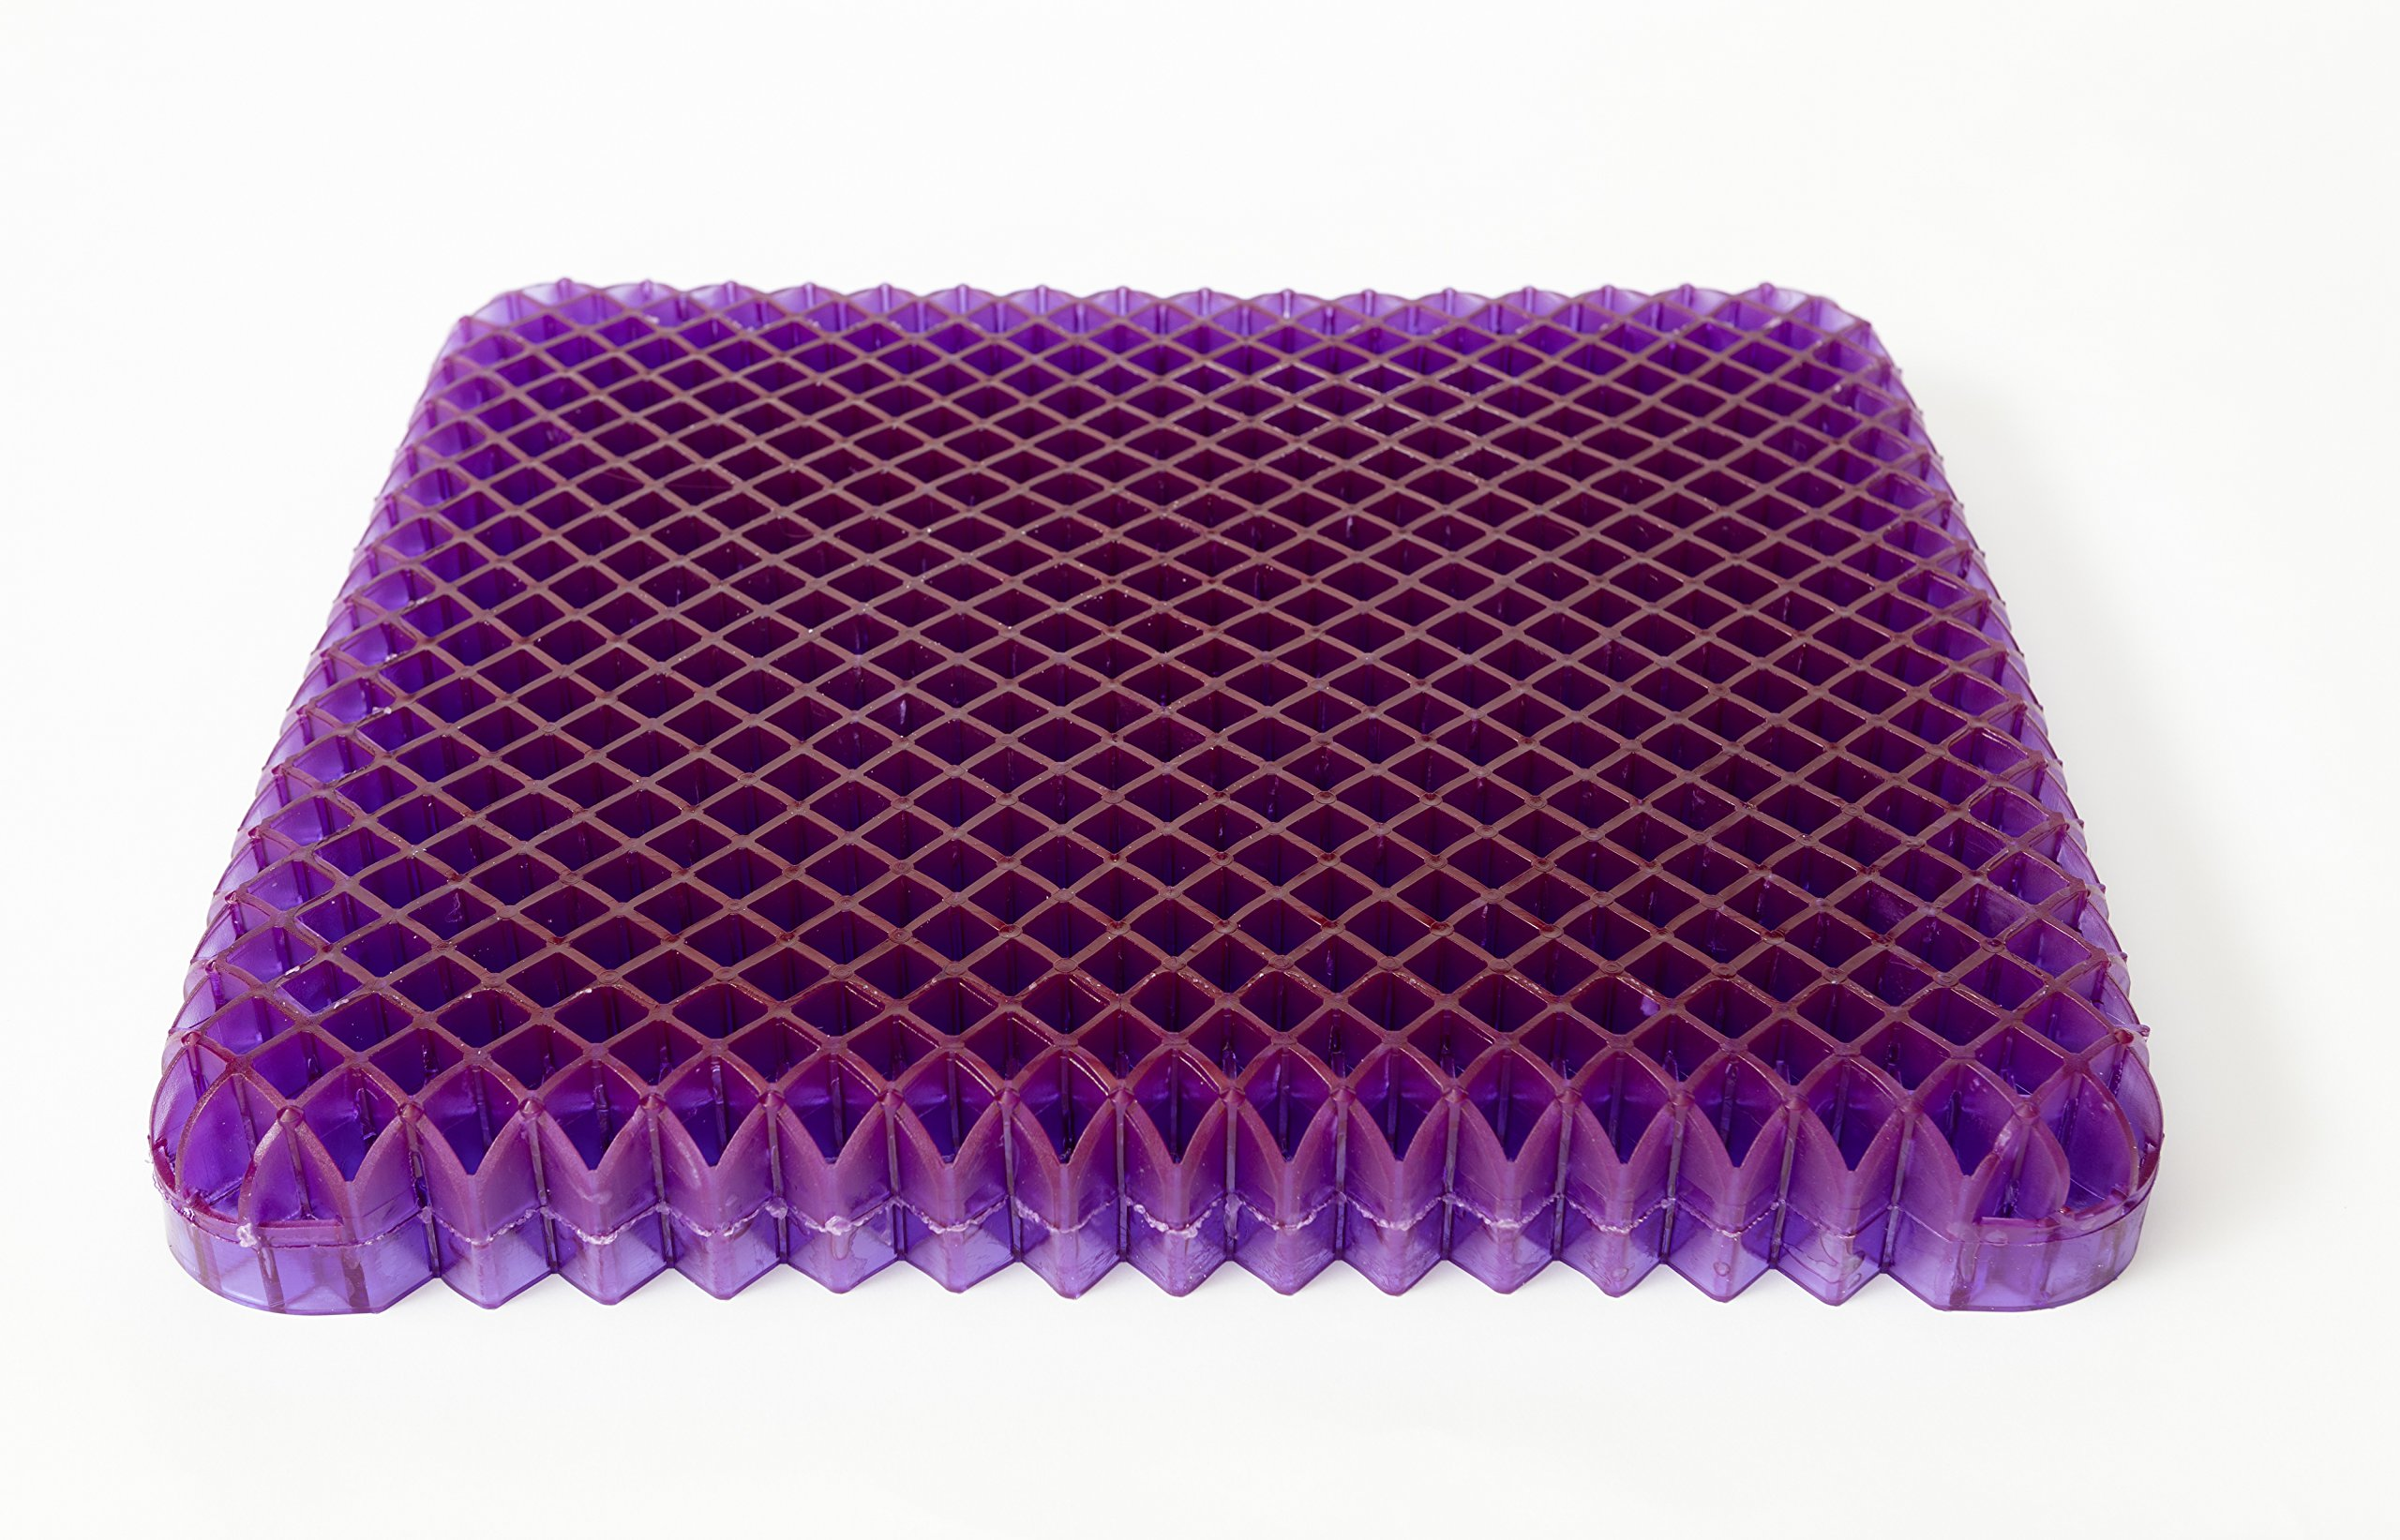 Purple Seat Cushion Royal - Seat Cushion For The Car Or Office Chair - Can Help In Relieving Back Pain & Sciatica Pain